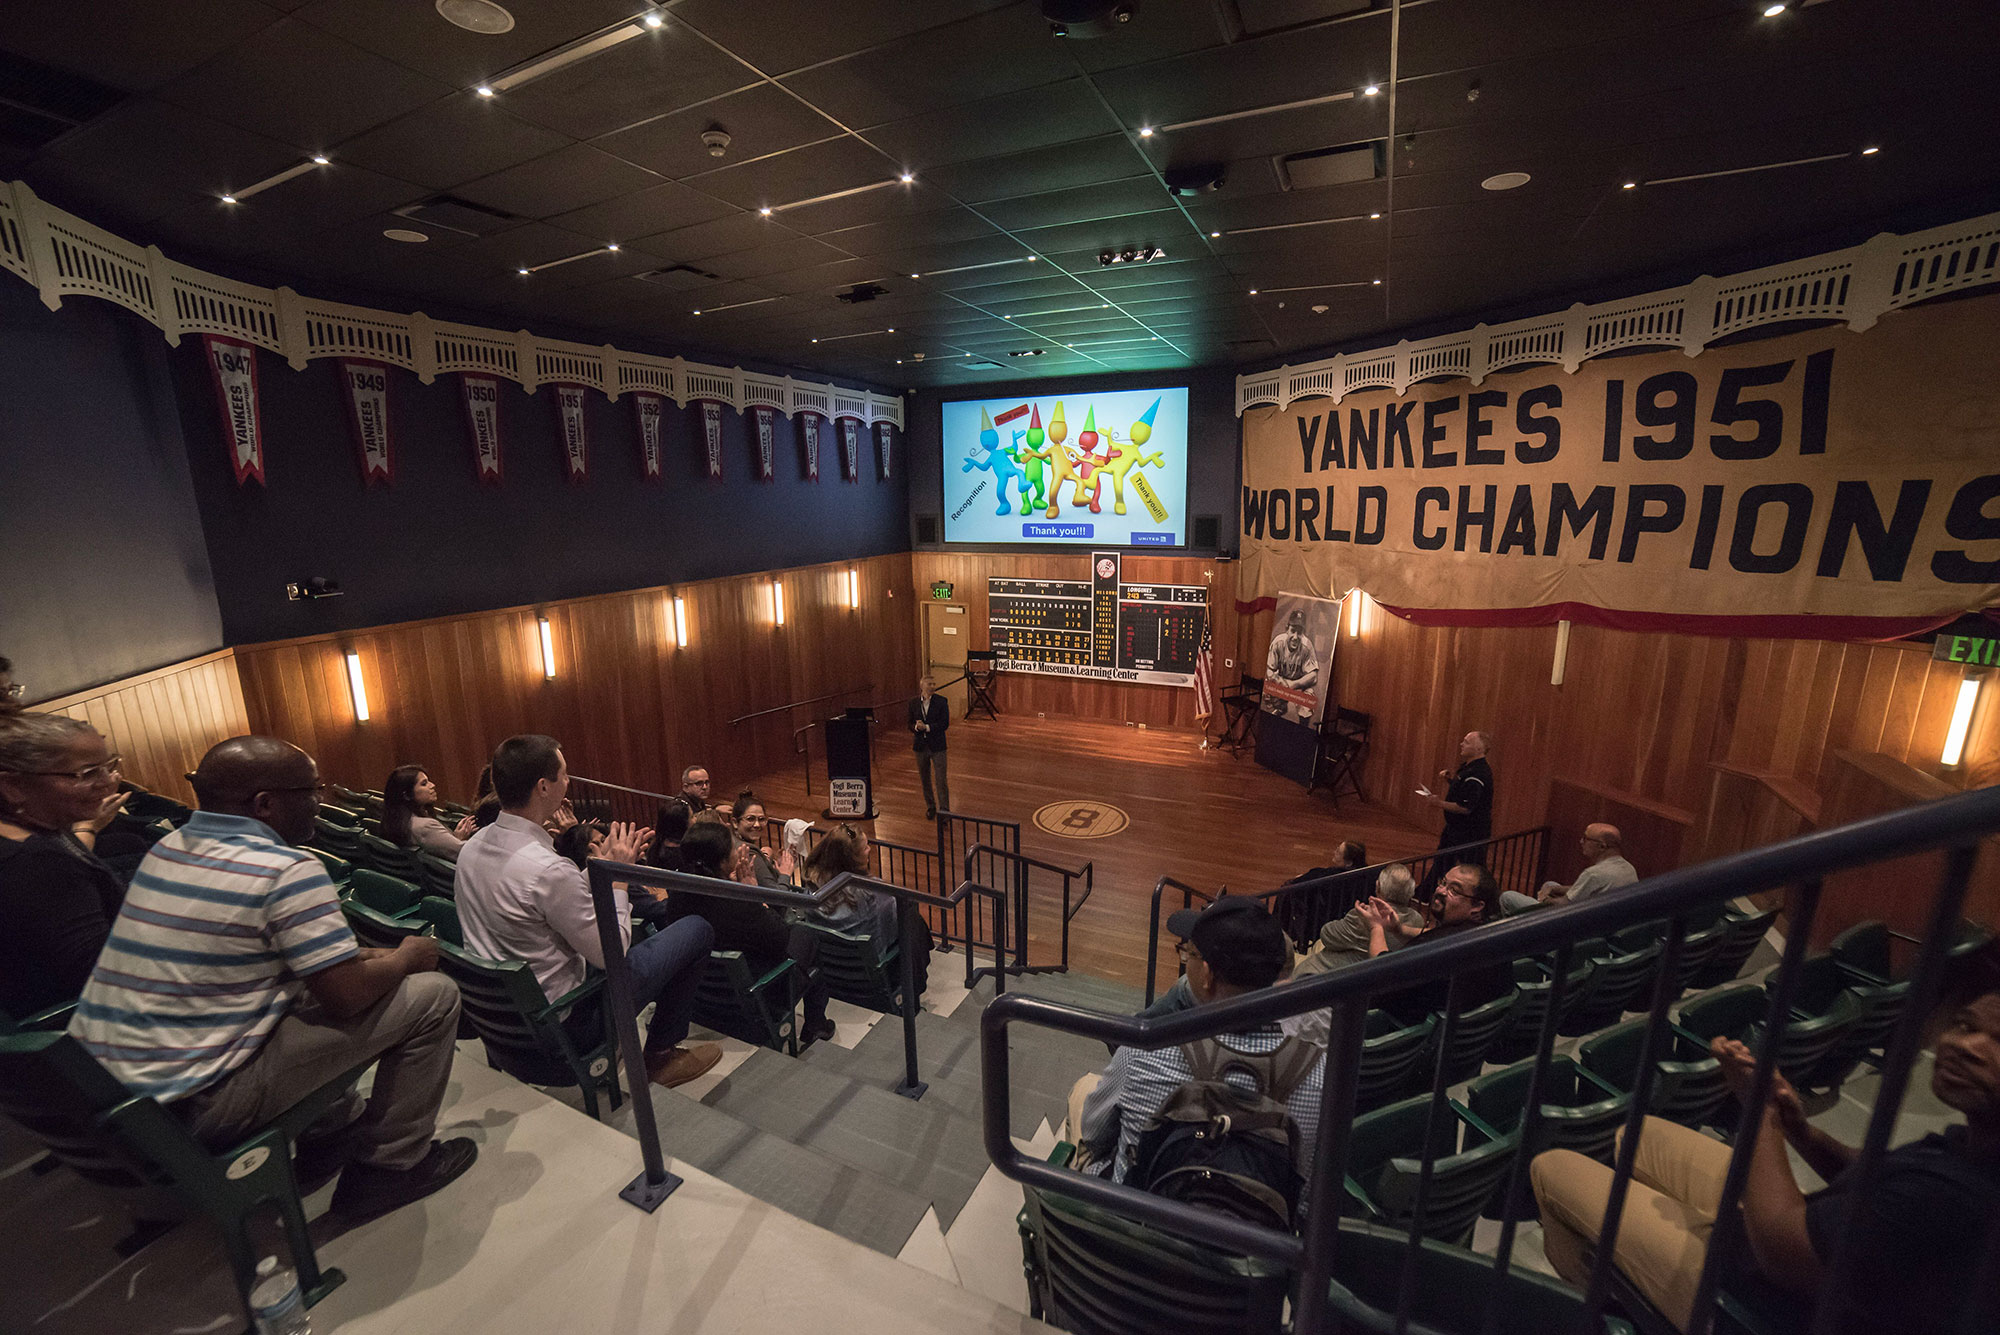 The Museum's 65-seat stadium-style theater filled with visitors